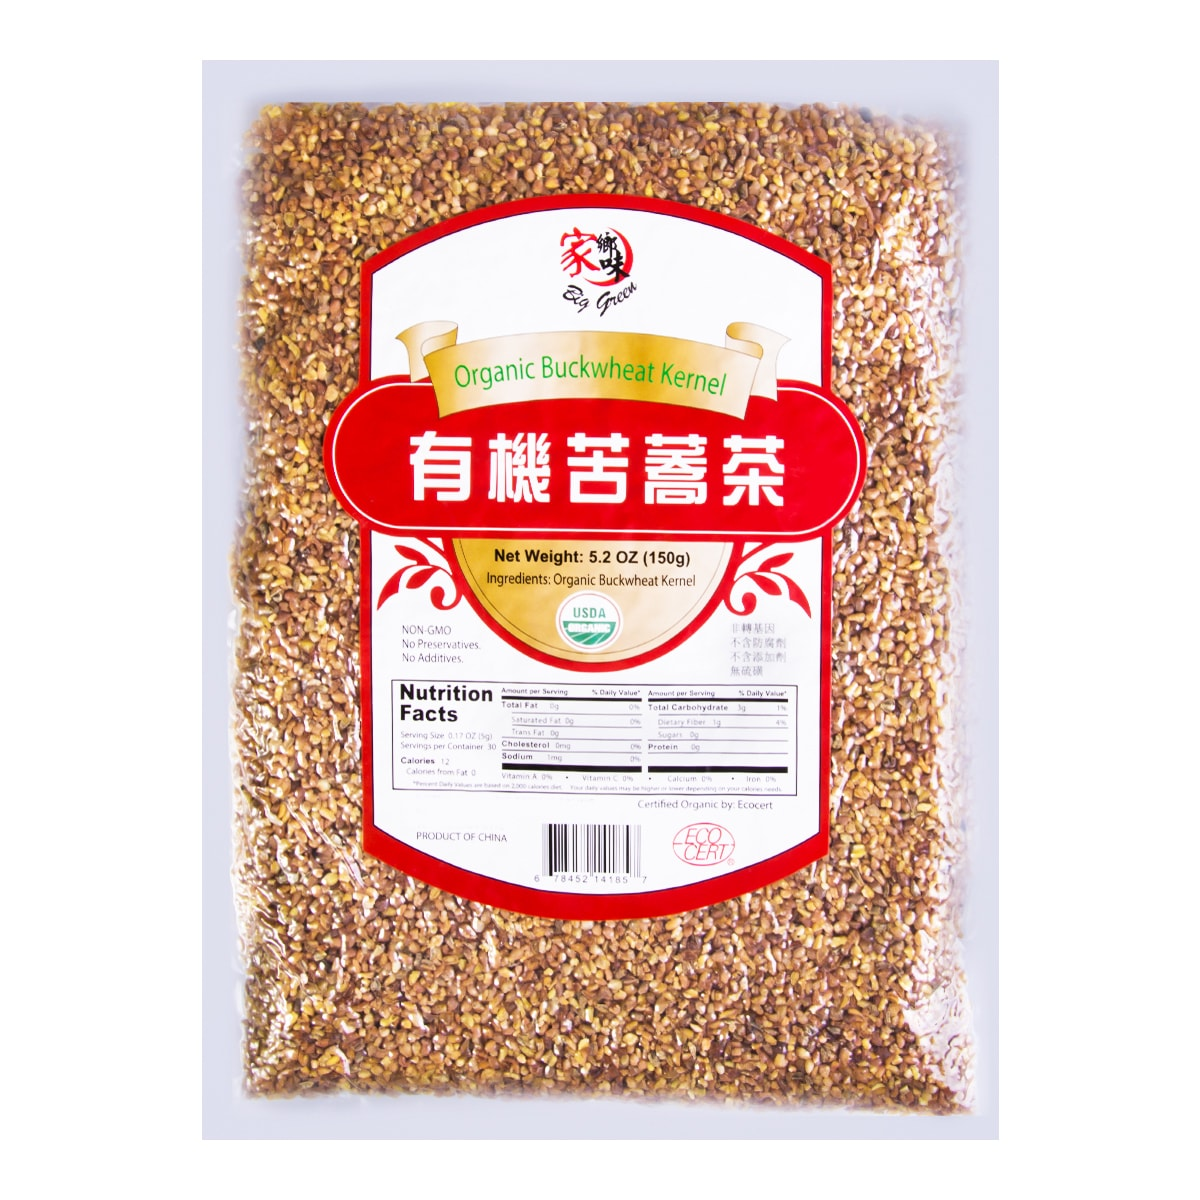 BIG GREEN Organic Roasted Buckwheat Kernel 150g